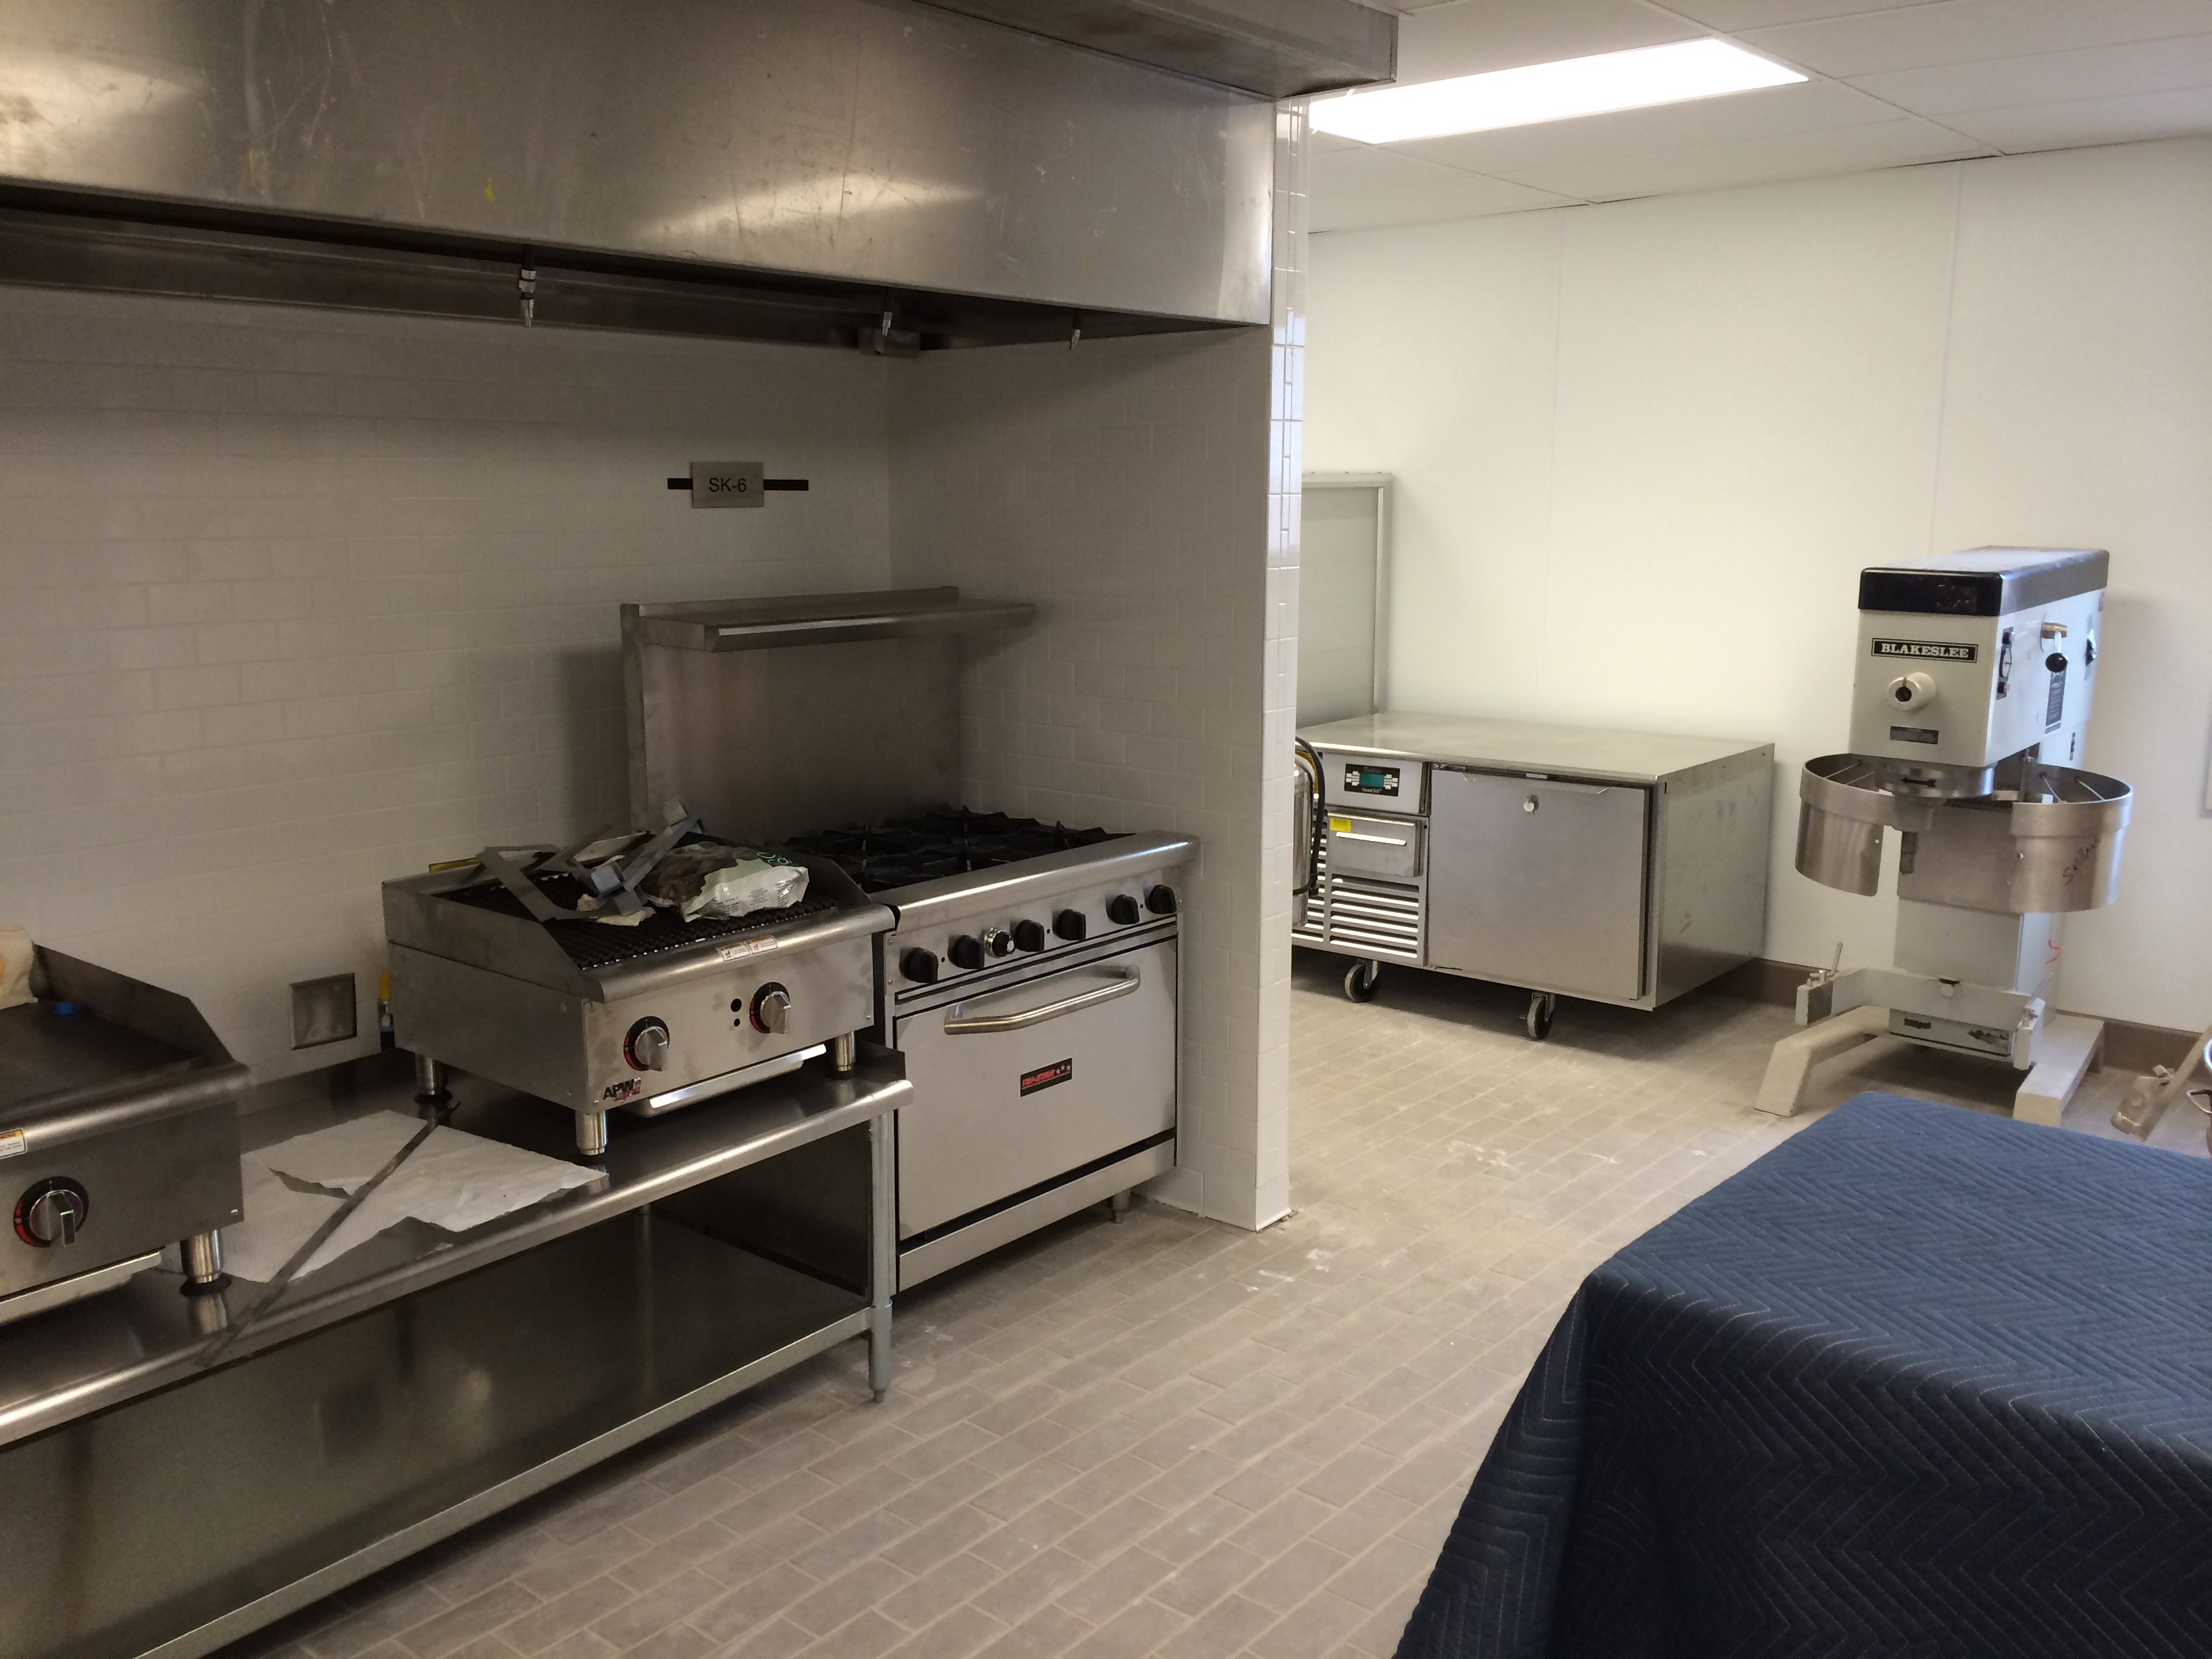 Fully equipped in a shared kitchen environment